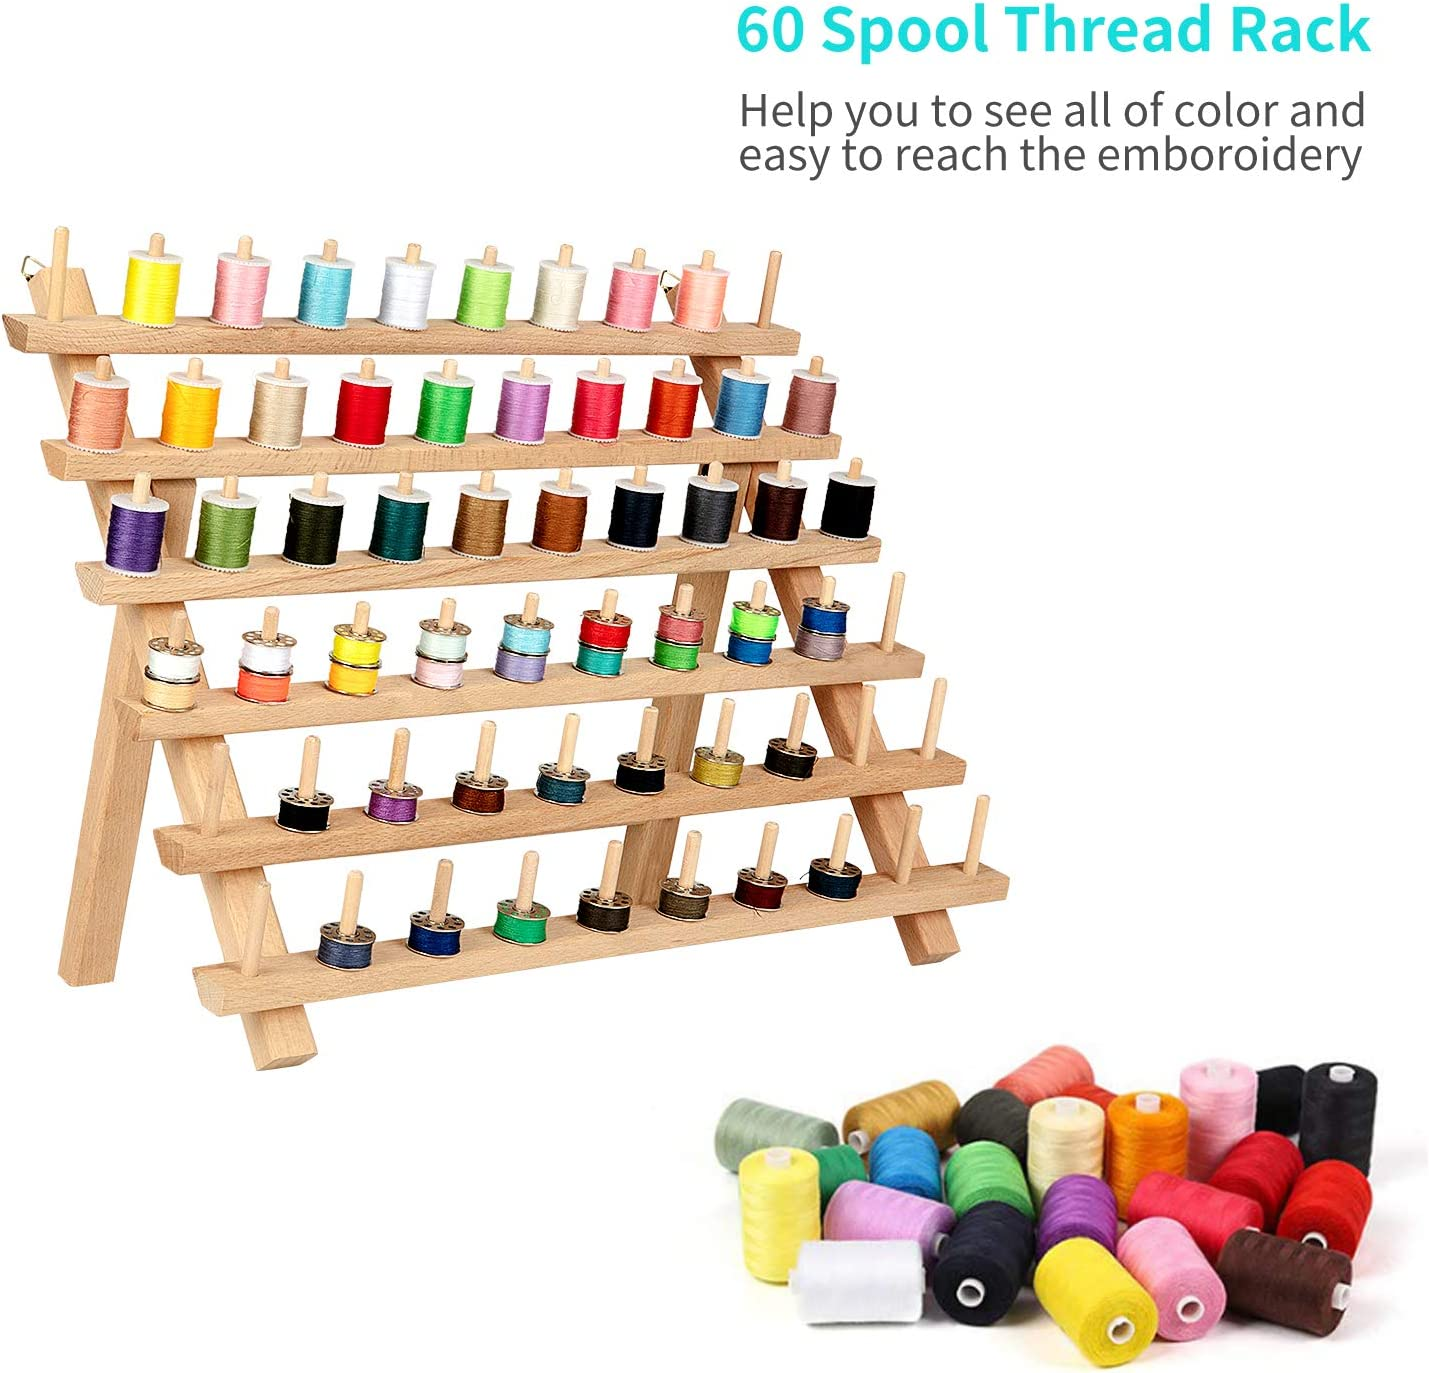 60 PCS Wooden Thread Spool Holder Thread Organizer and Bobbin Holder for Saving Space QUARKACE Thread Rack Wall Hanging or Stand on Table